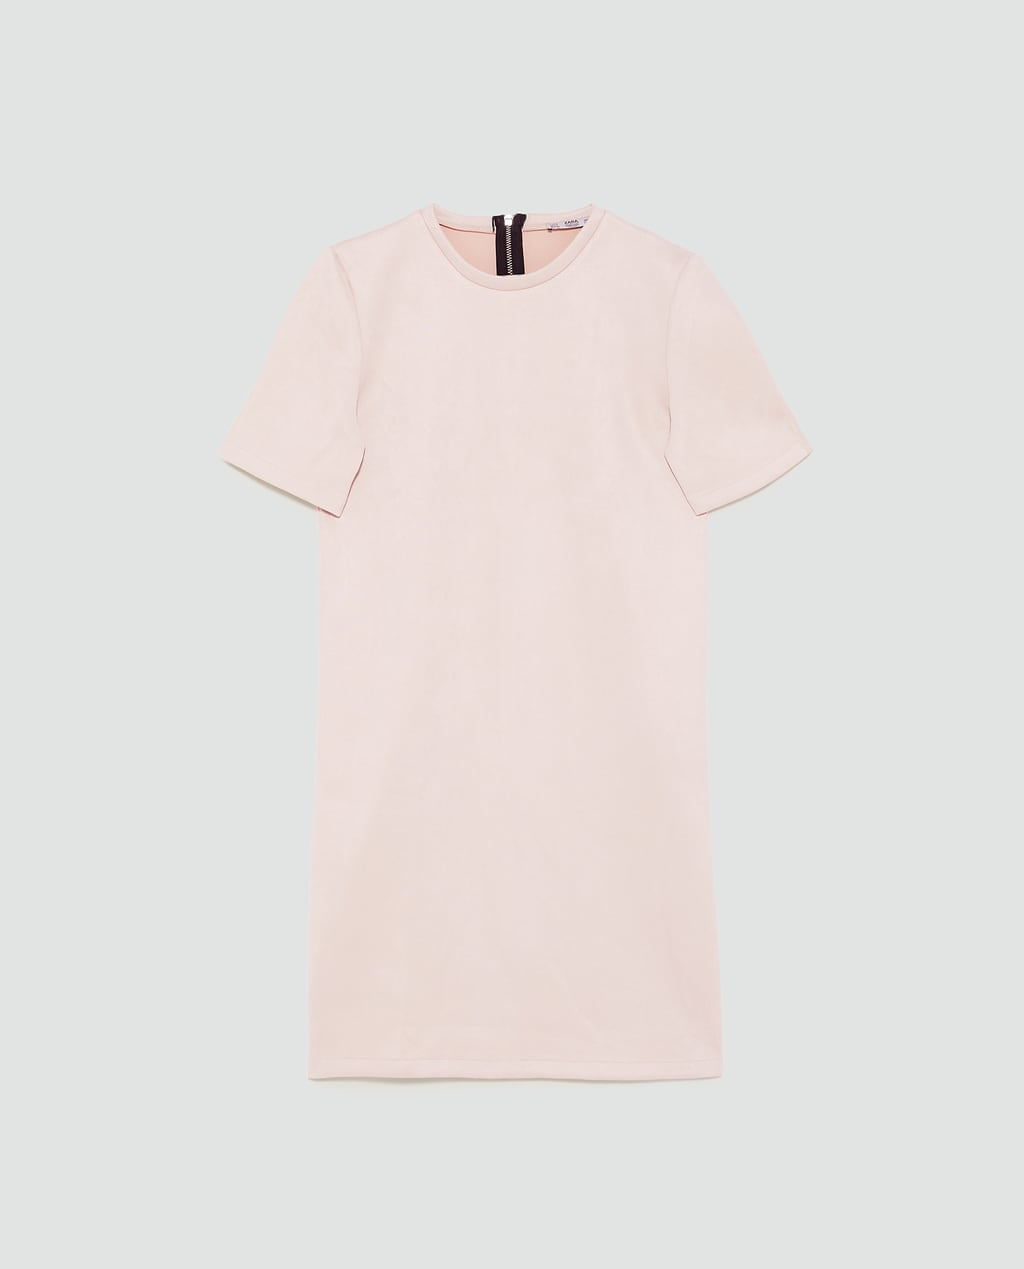 - Round neck dress with short sleeves. Features an A-line silhouette. Fastens in the back with metal zip.